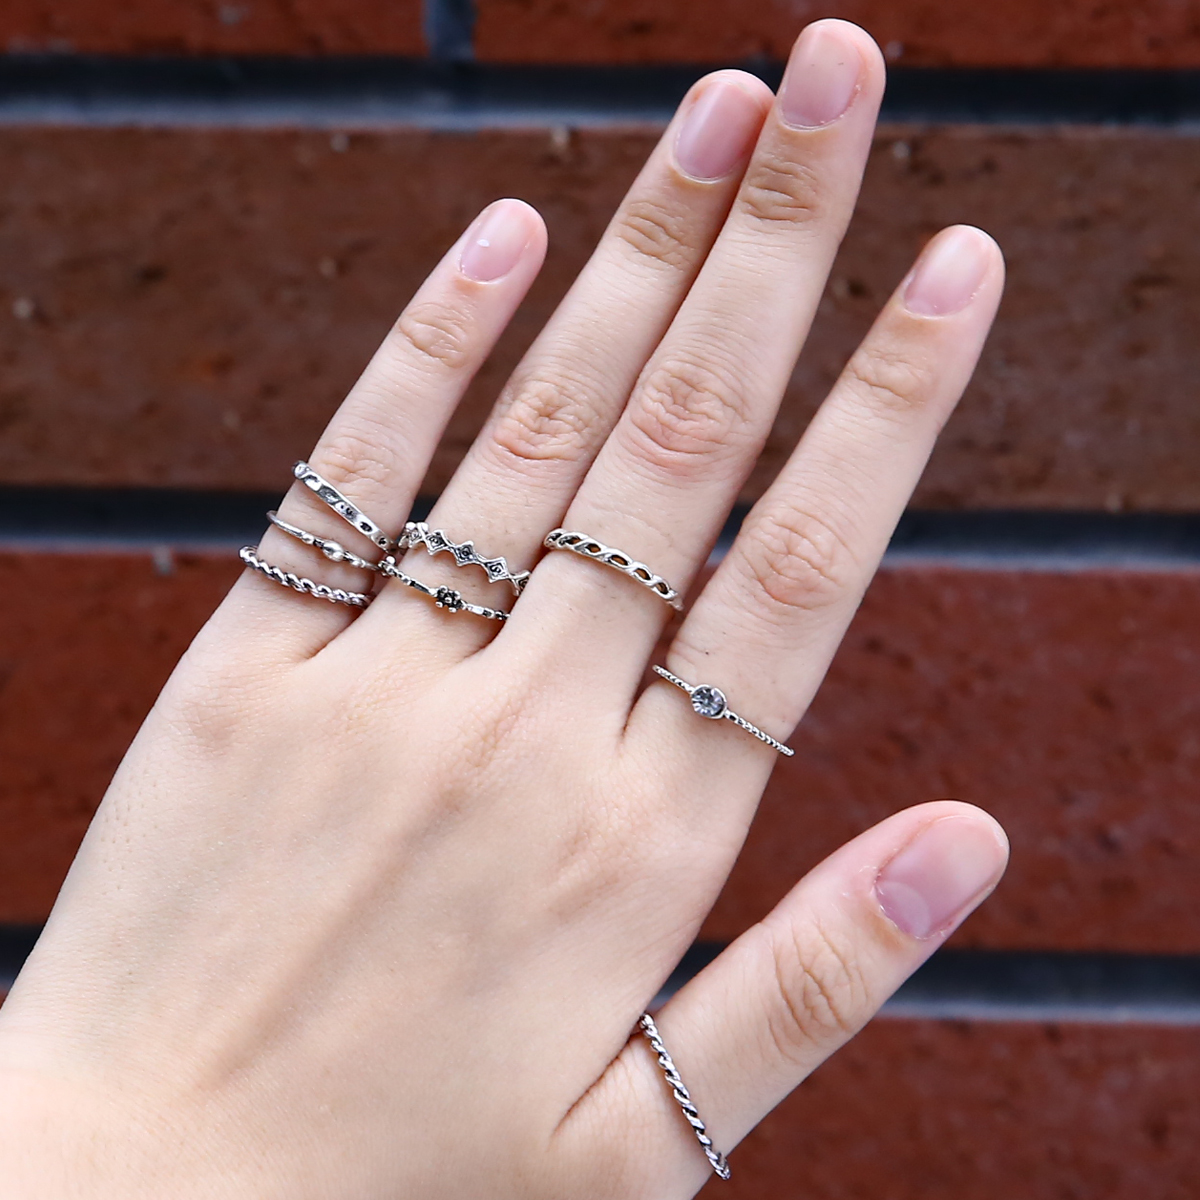 Boho Women Aolly Ring Set Fashion Lady Girls Above Knuckle Midi Finger Rings Anel masculino For Women Punk Party Jewelry